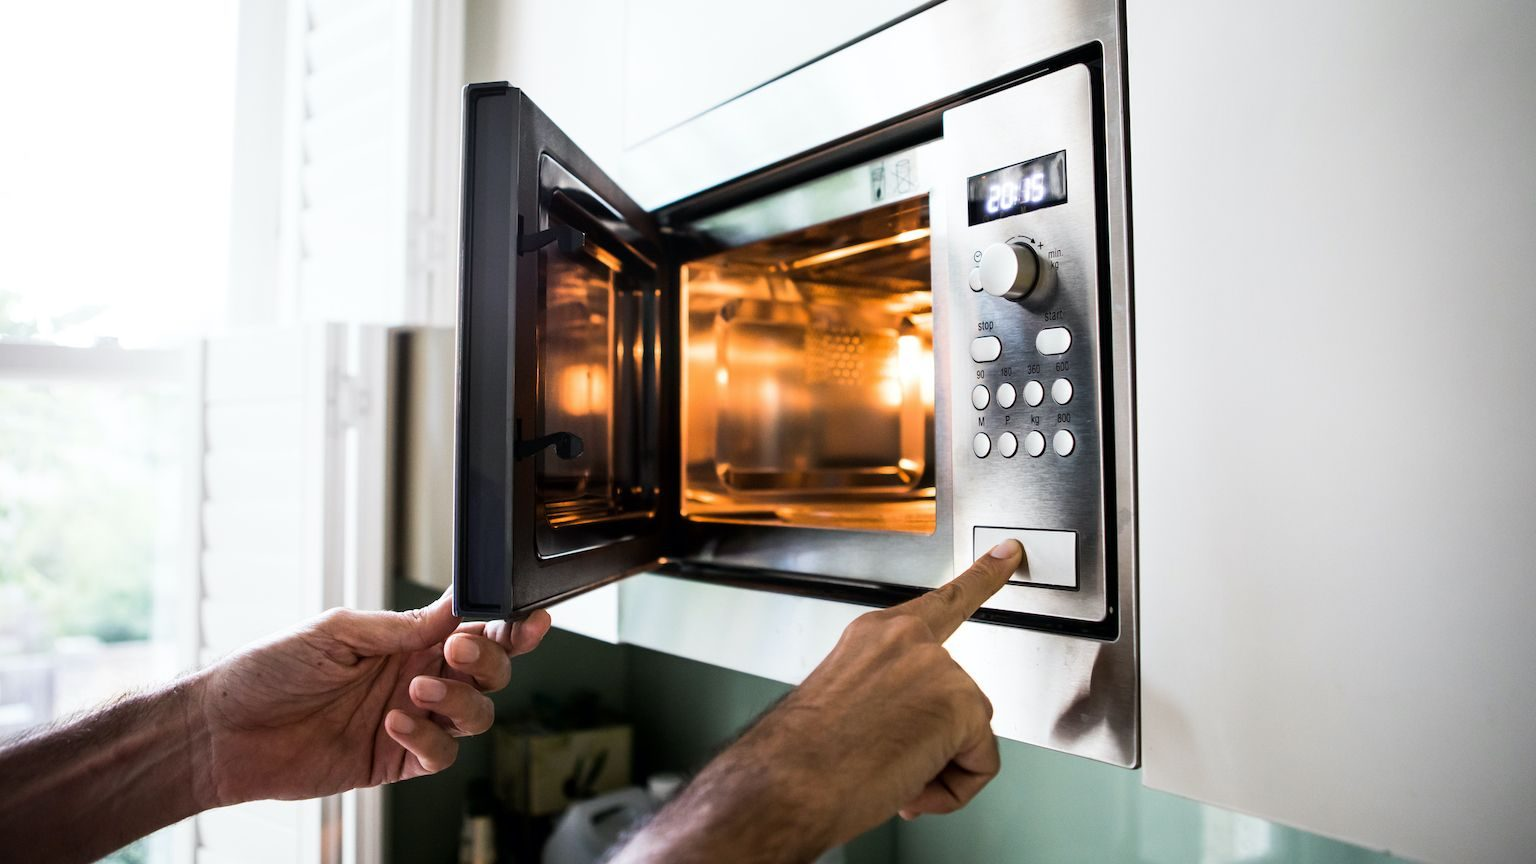 A mans hands opening a microwave and pushing buttons